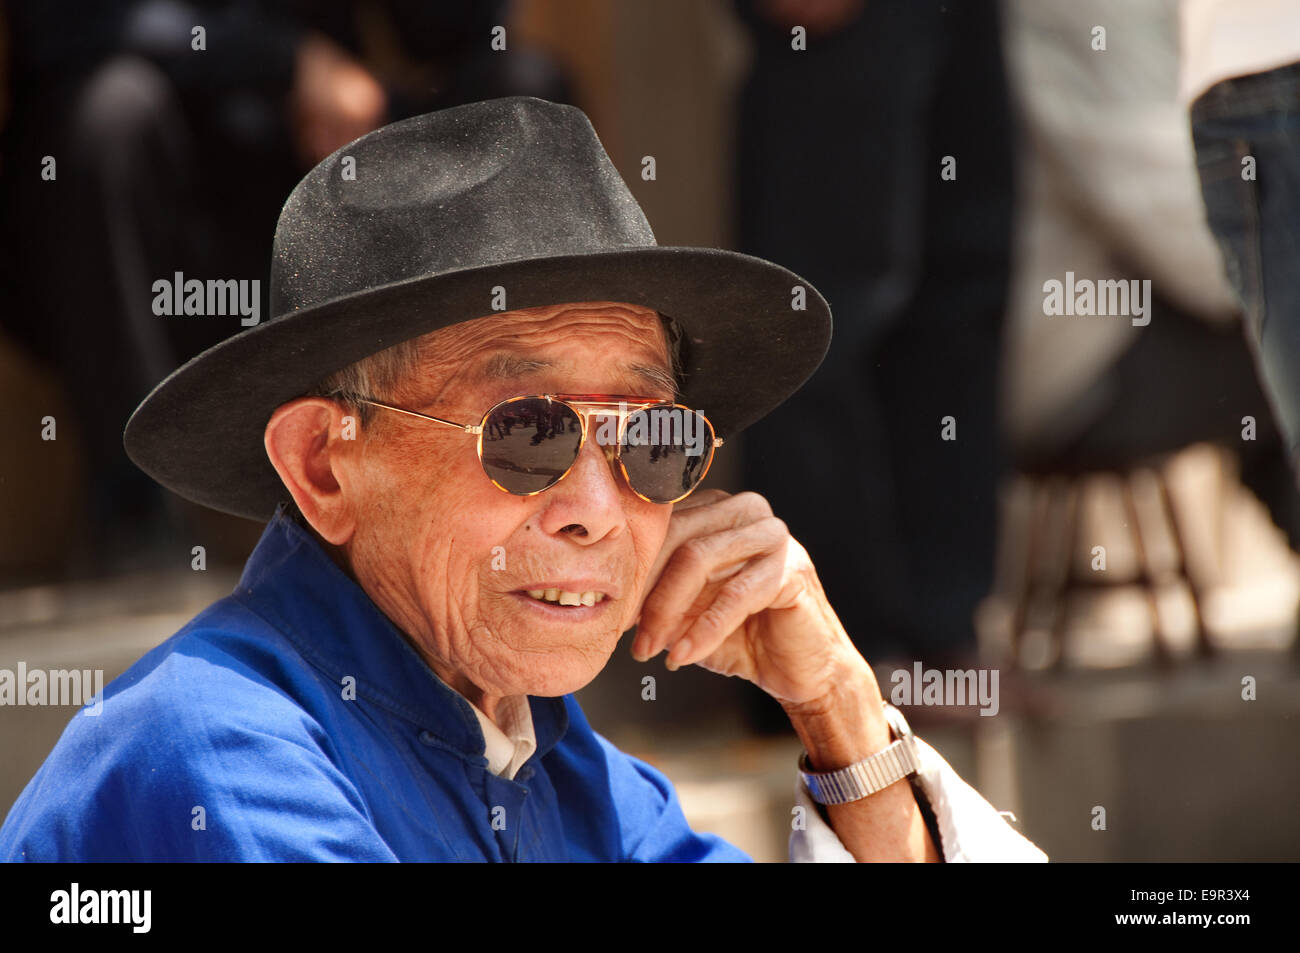 0c7c7c851b7e4 Old Chinese Man Stock Photos   Old Chinese Man Stock Images - Alamy